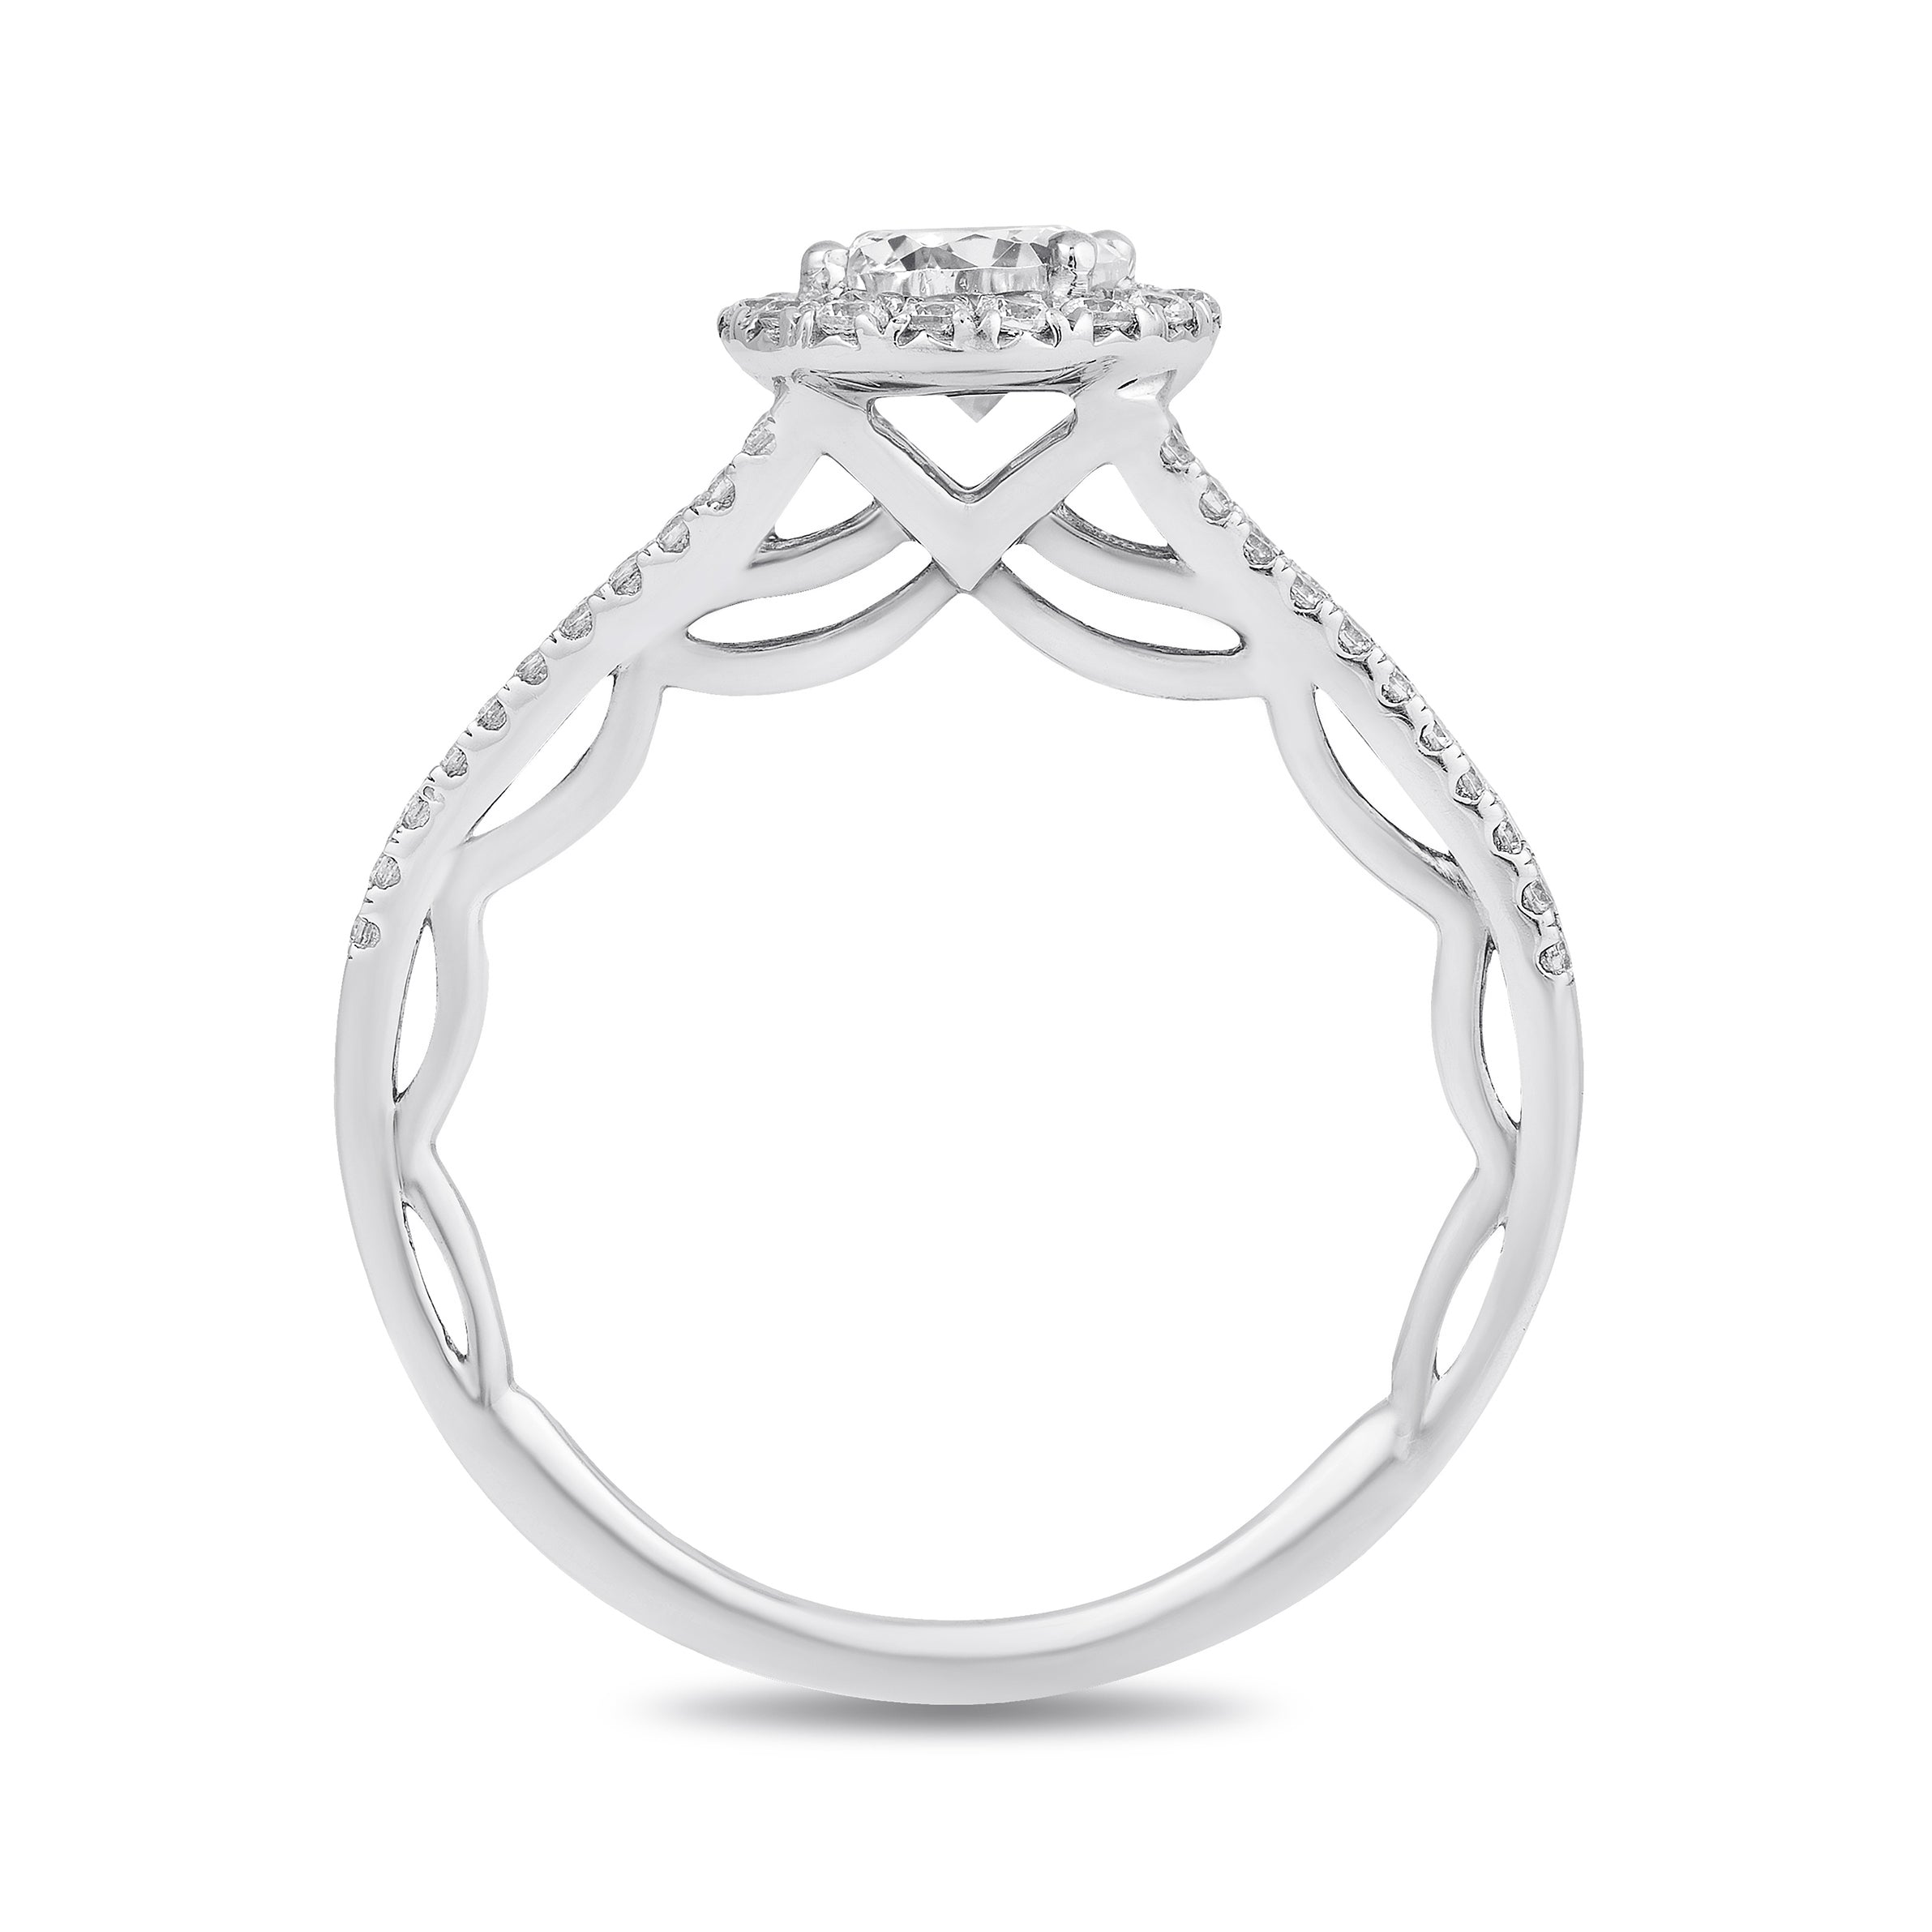 enchanted_disney-majestic-princess_tiara_bridal_ring_1CTTW_4